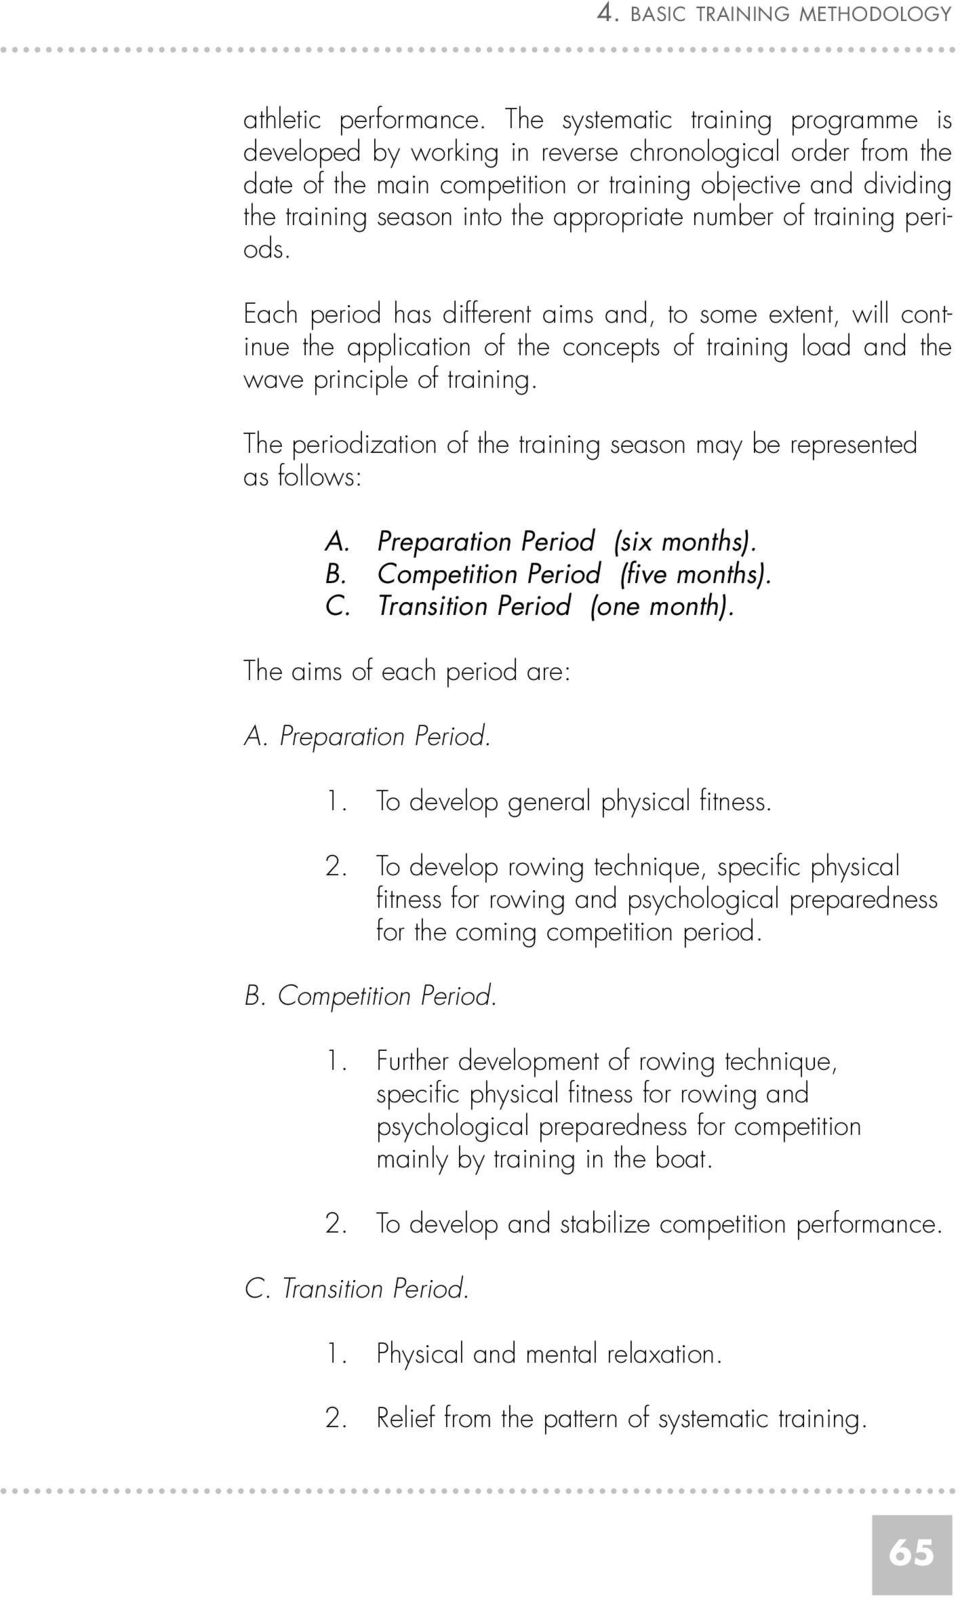 appropriate number of training periods. Each period has different aims and, to some extent, will continue the application of the concepts of training load and the wave principle of training.